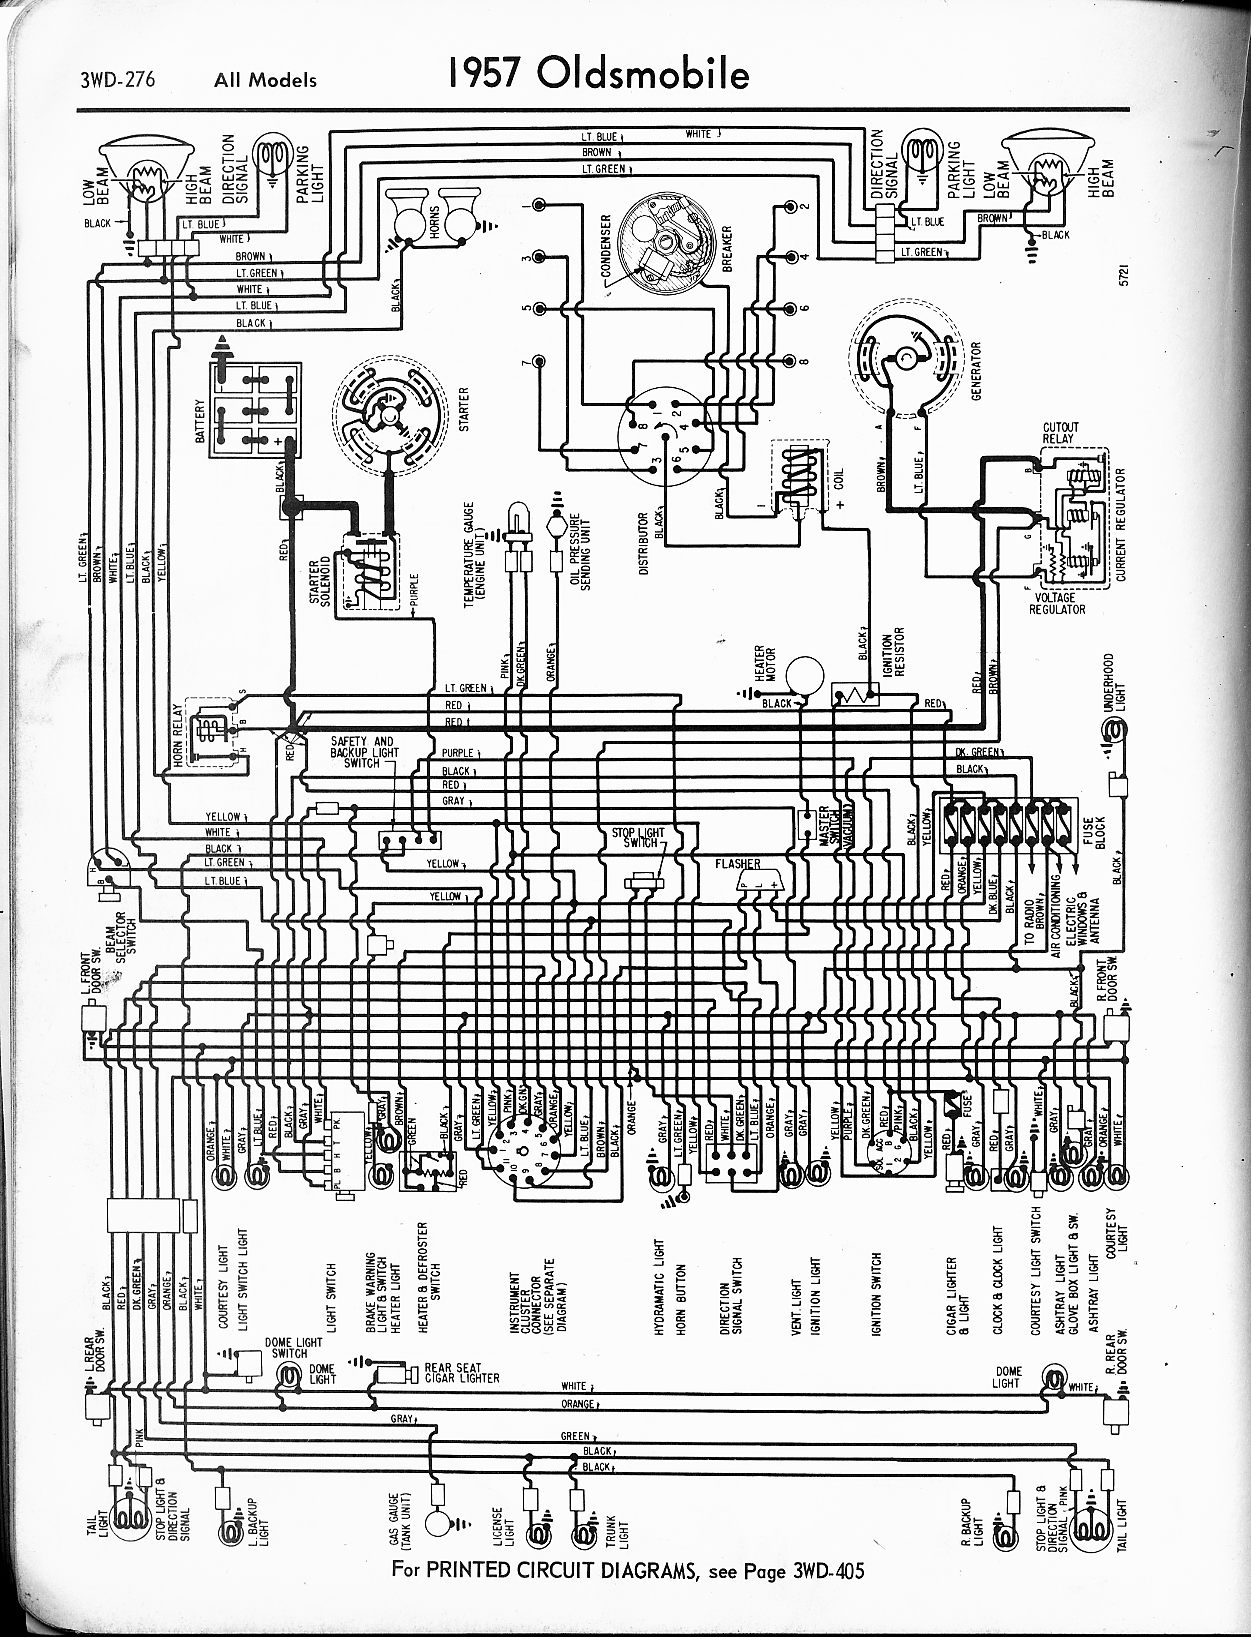 MWire5765 276 oldsmobile wiring diagrams the old car manual project  at edmiracle.co